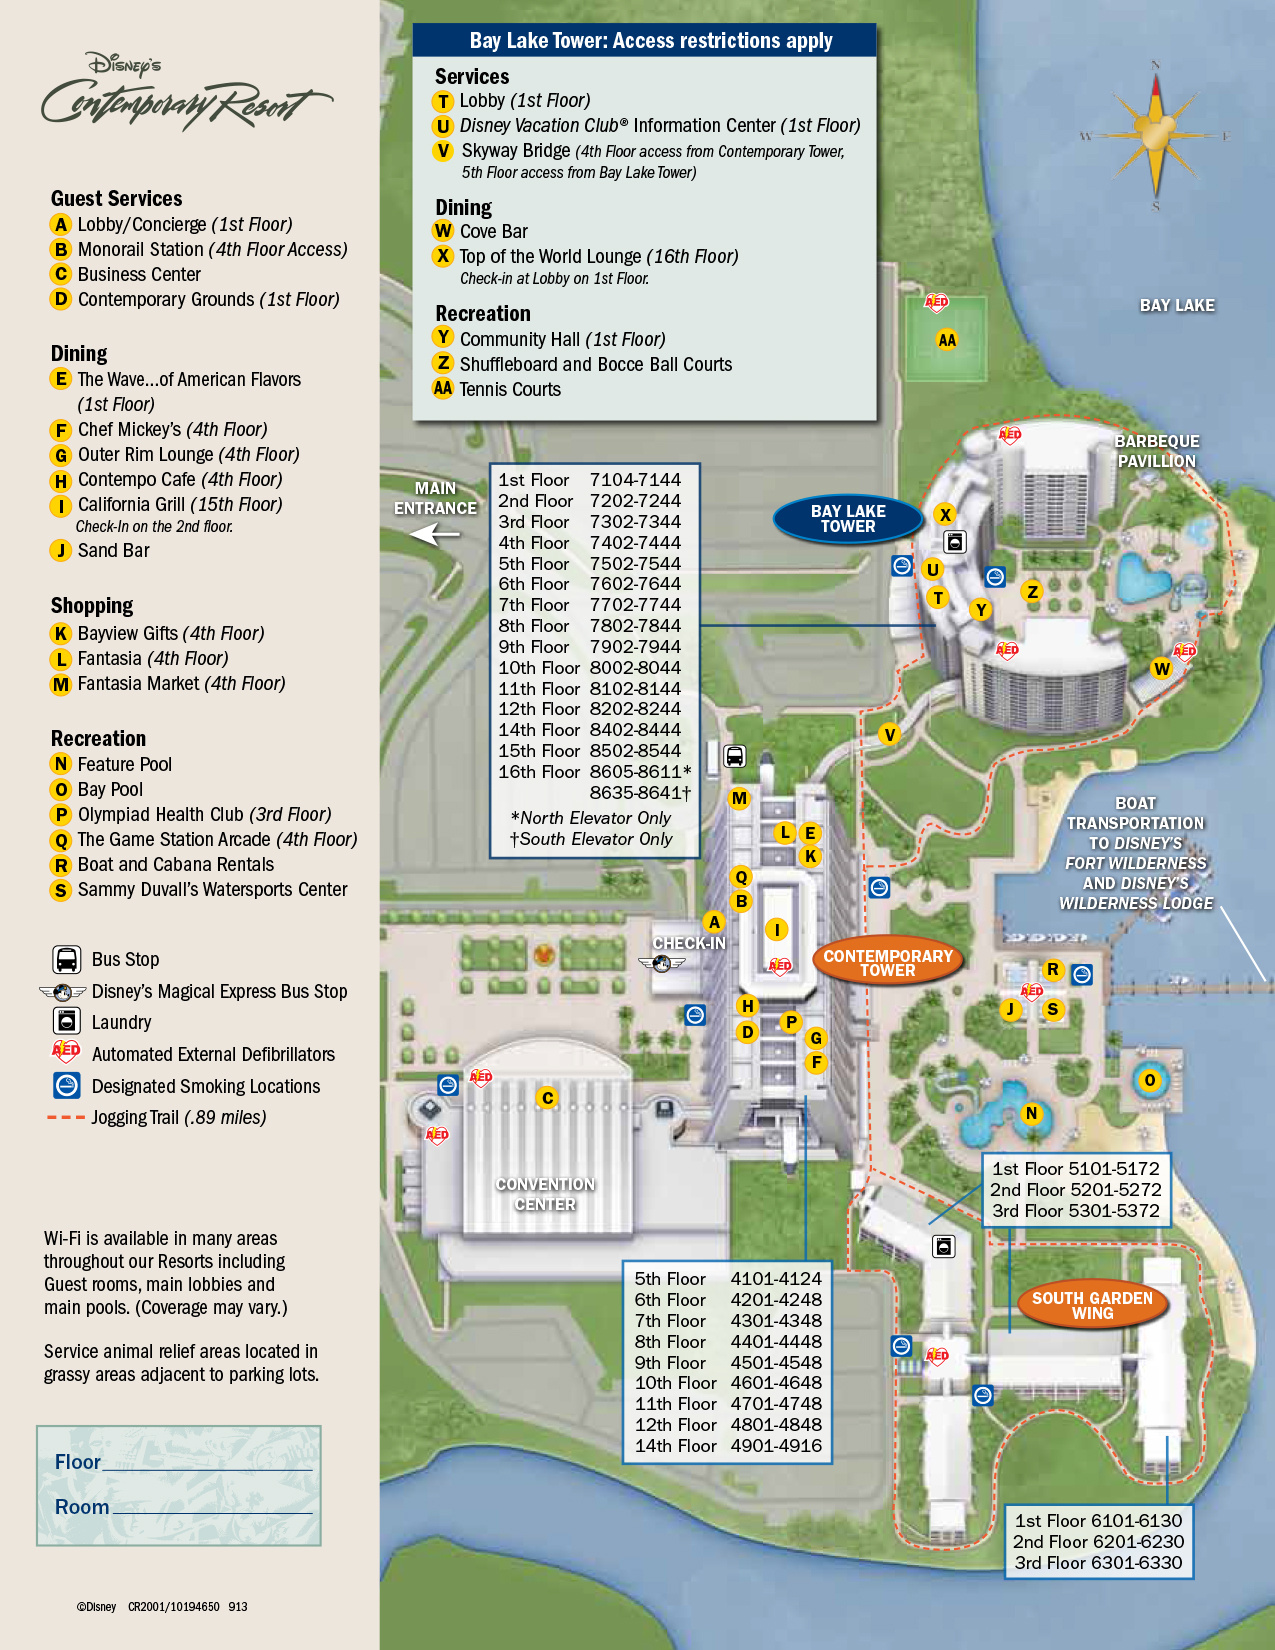 Contemporary Resort Map | KennythePirate's Unofficial Guide to ... on